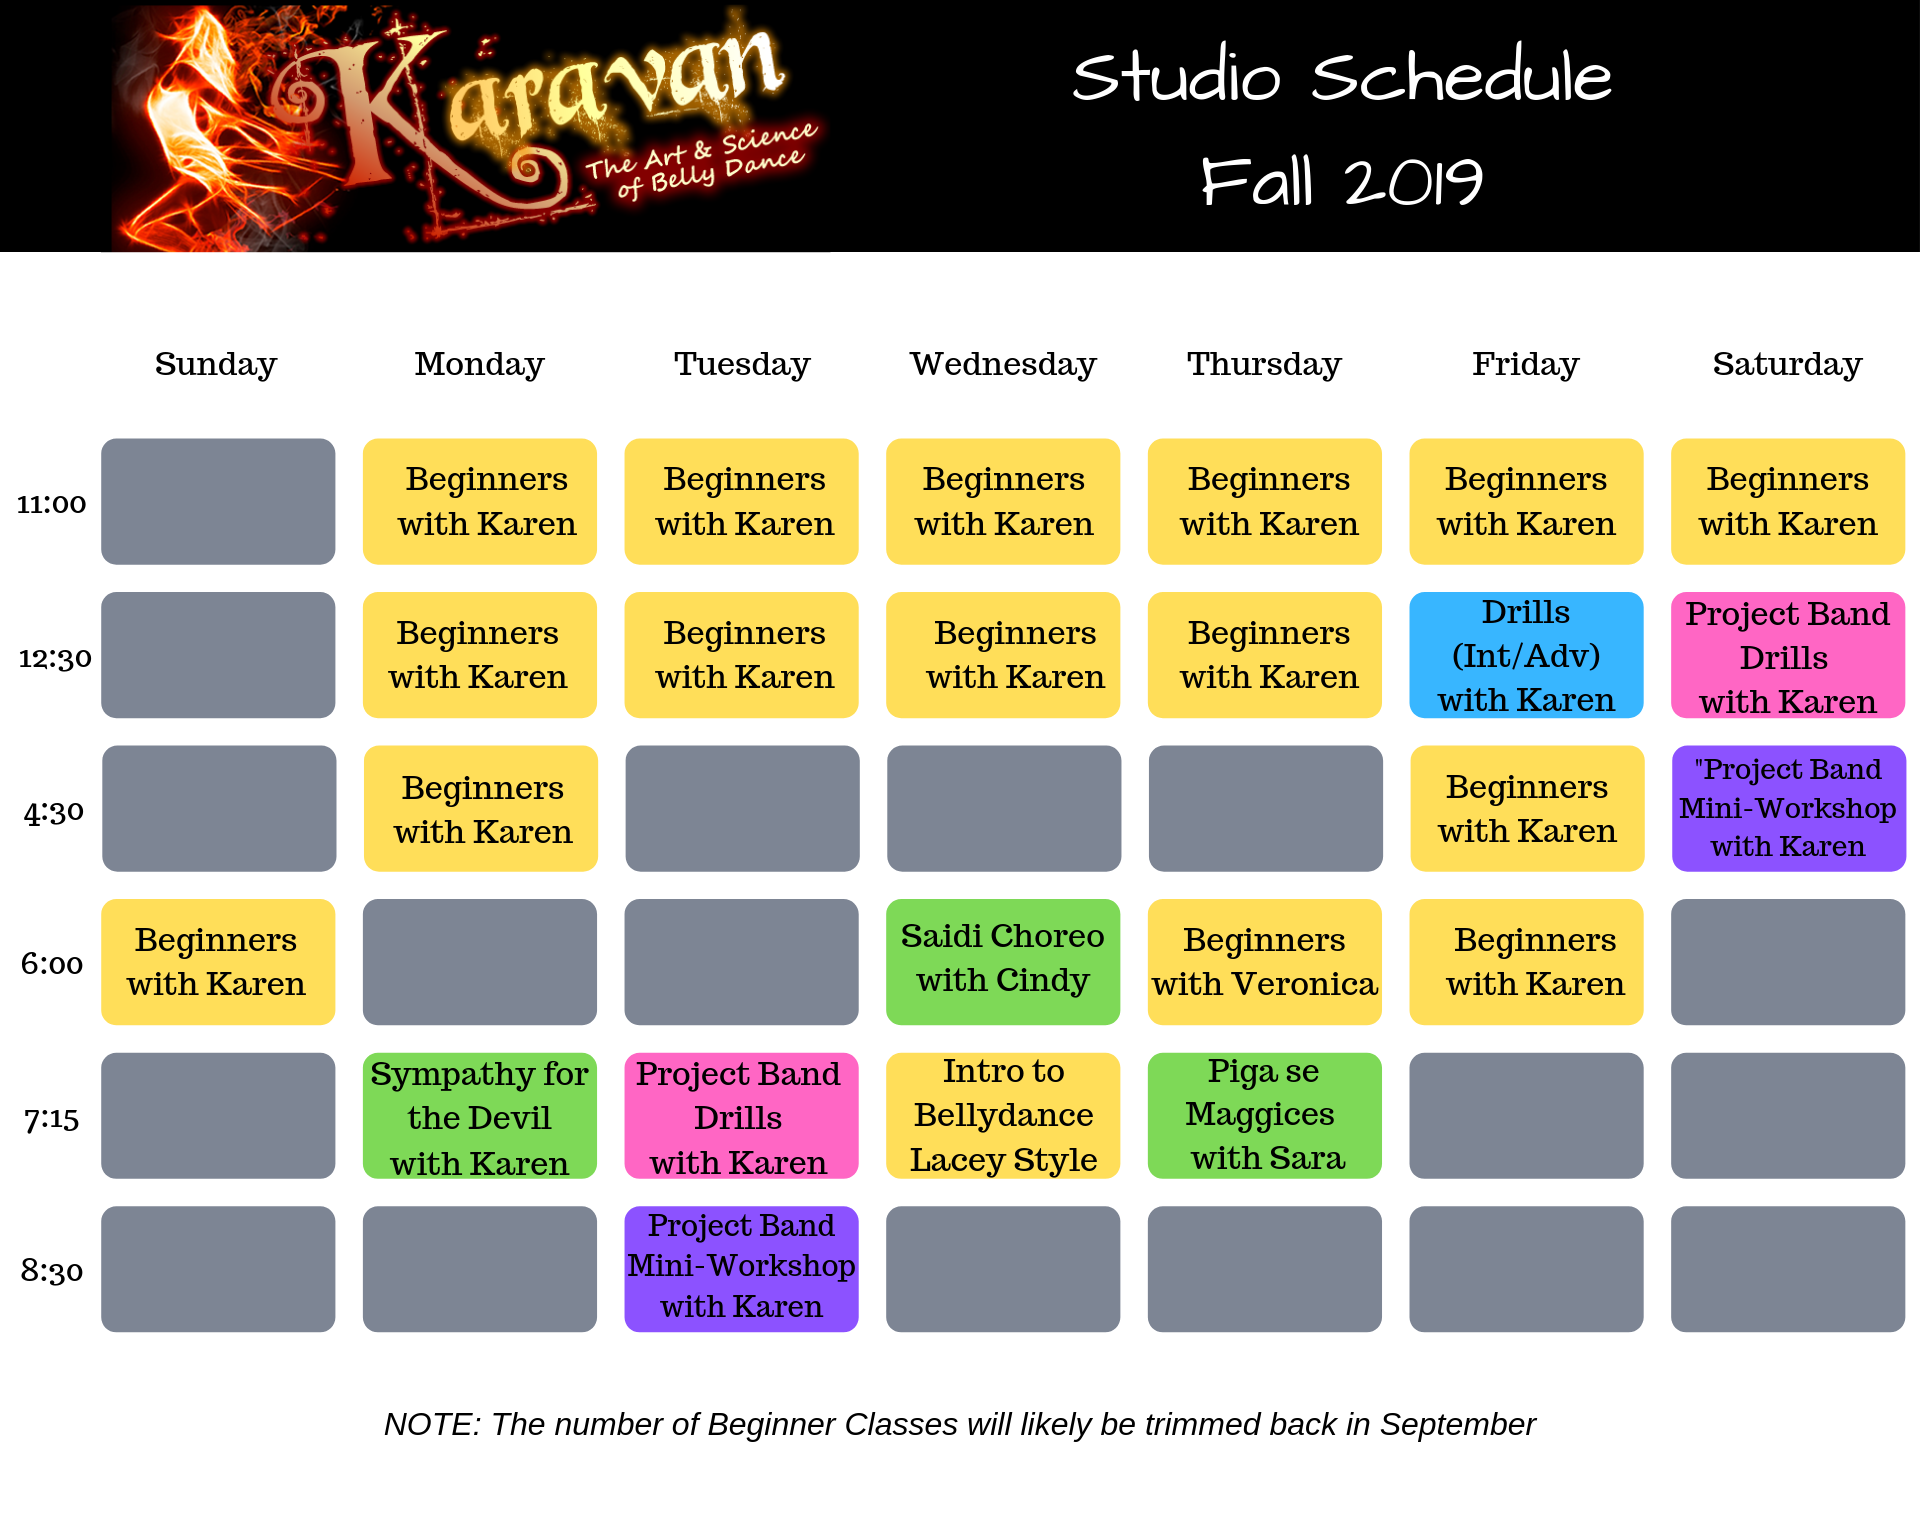 Karavan's Fall 2019 Studio Schedule